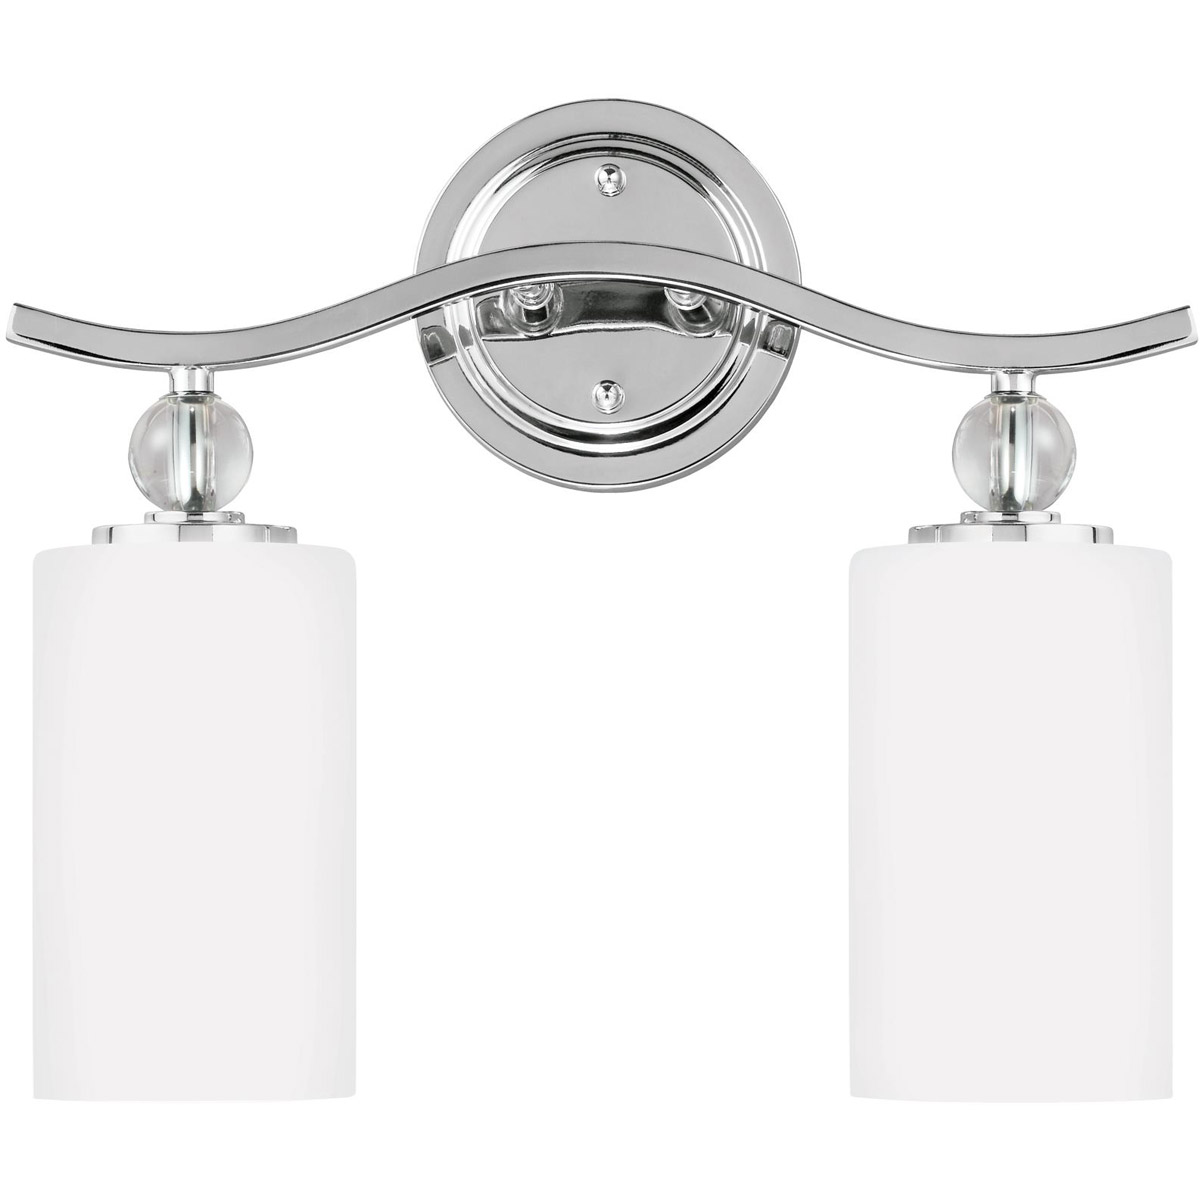 Sea Gull Englehorn 2 Light Bath Vanity in Chrome / Optic Crystal 4413402-05